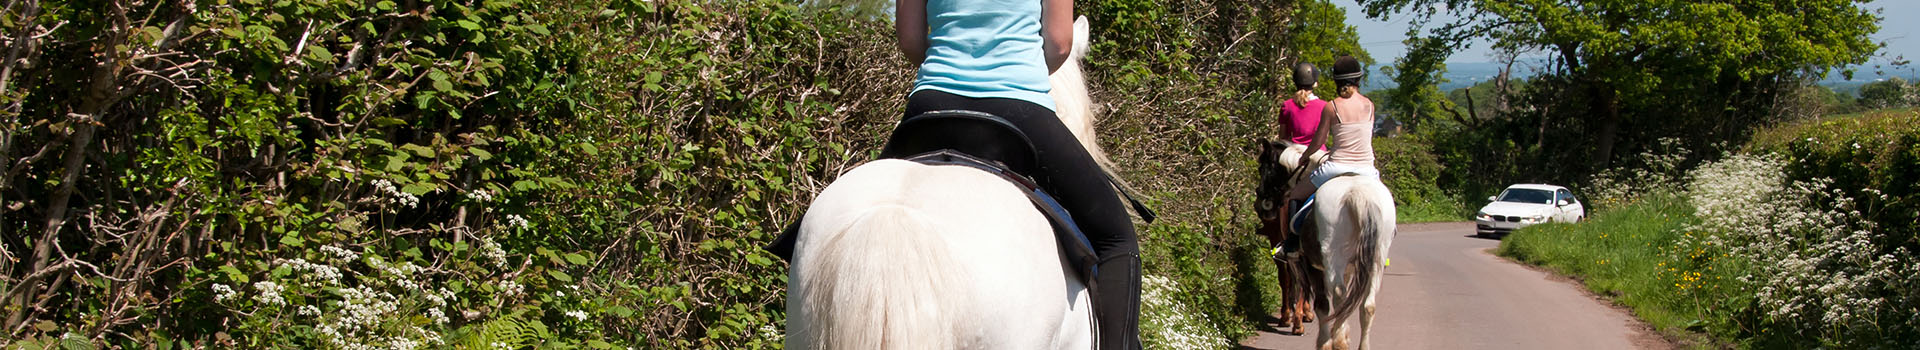 Horse riding injury claims